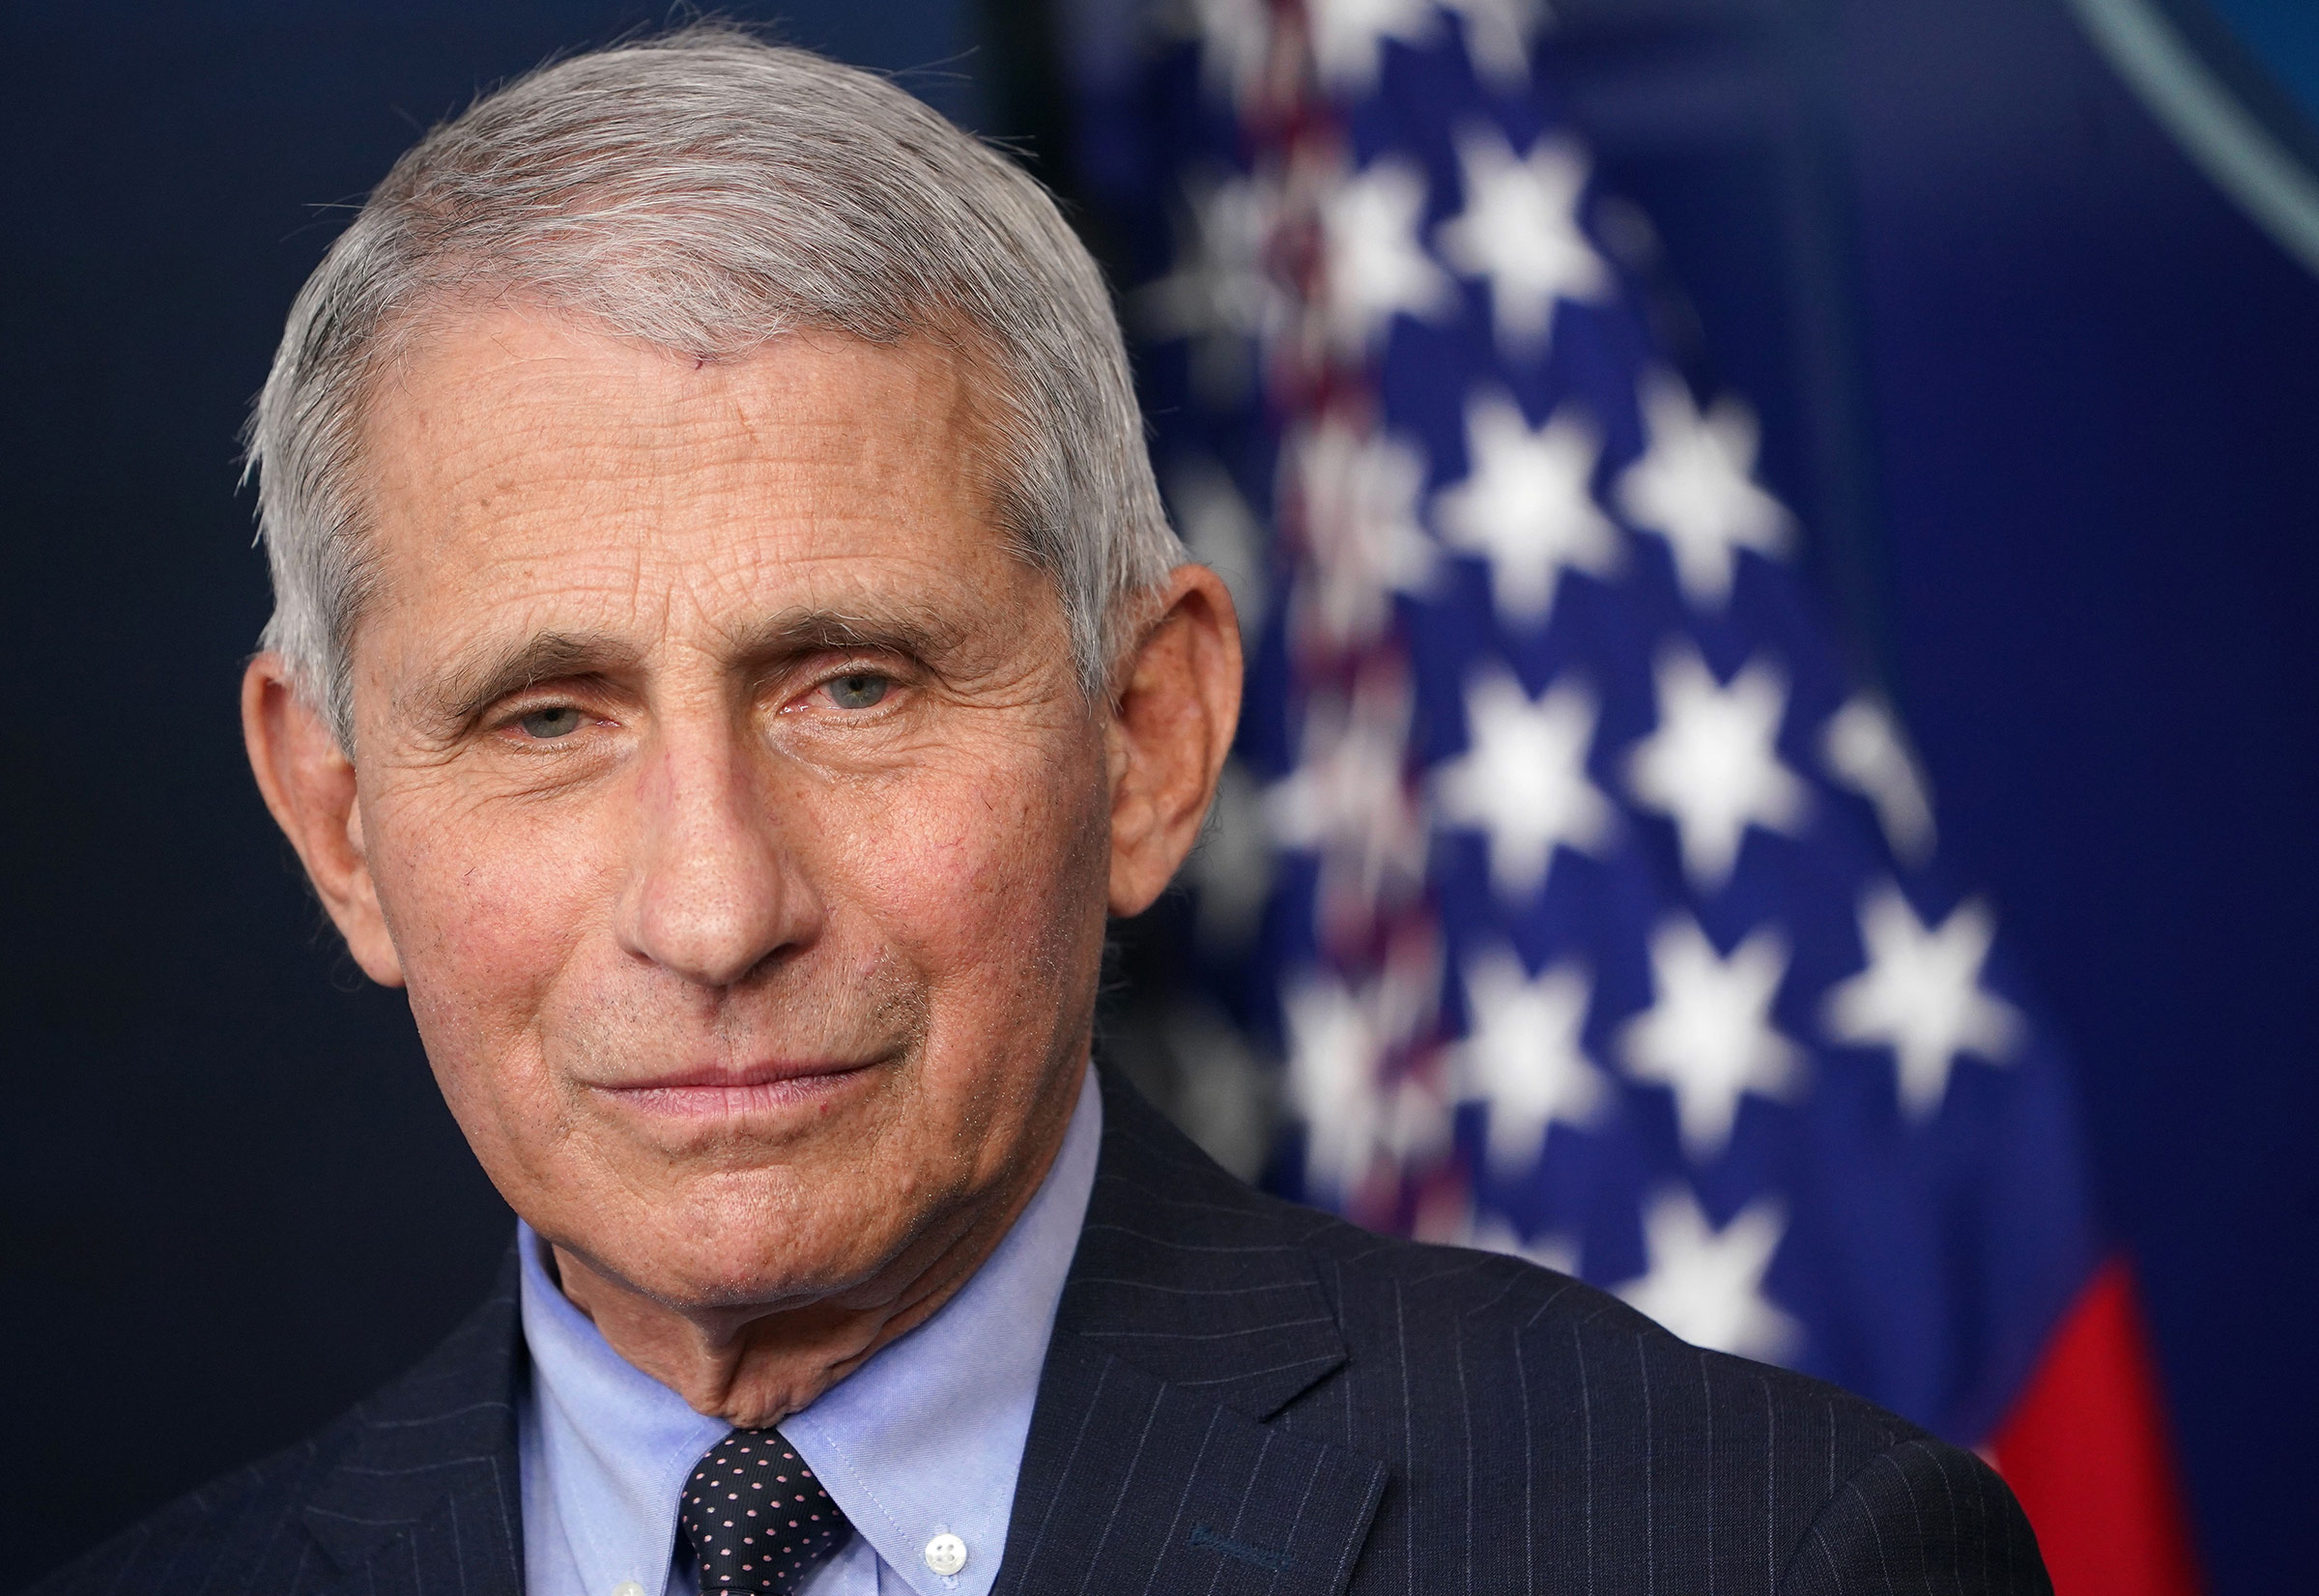 Dr. Anthony Fauci speaks during a briefing at the White House in Washington, DC, on January 21.